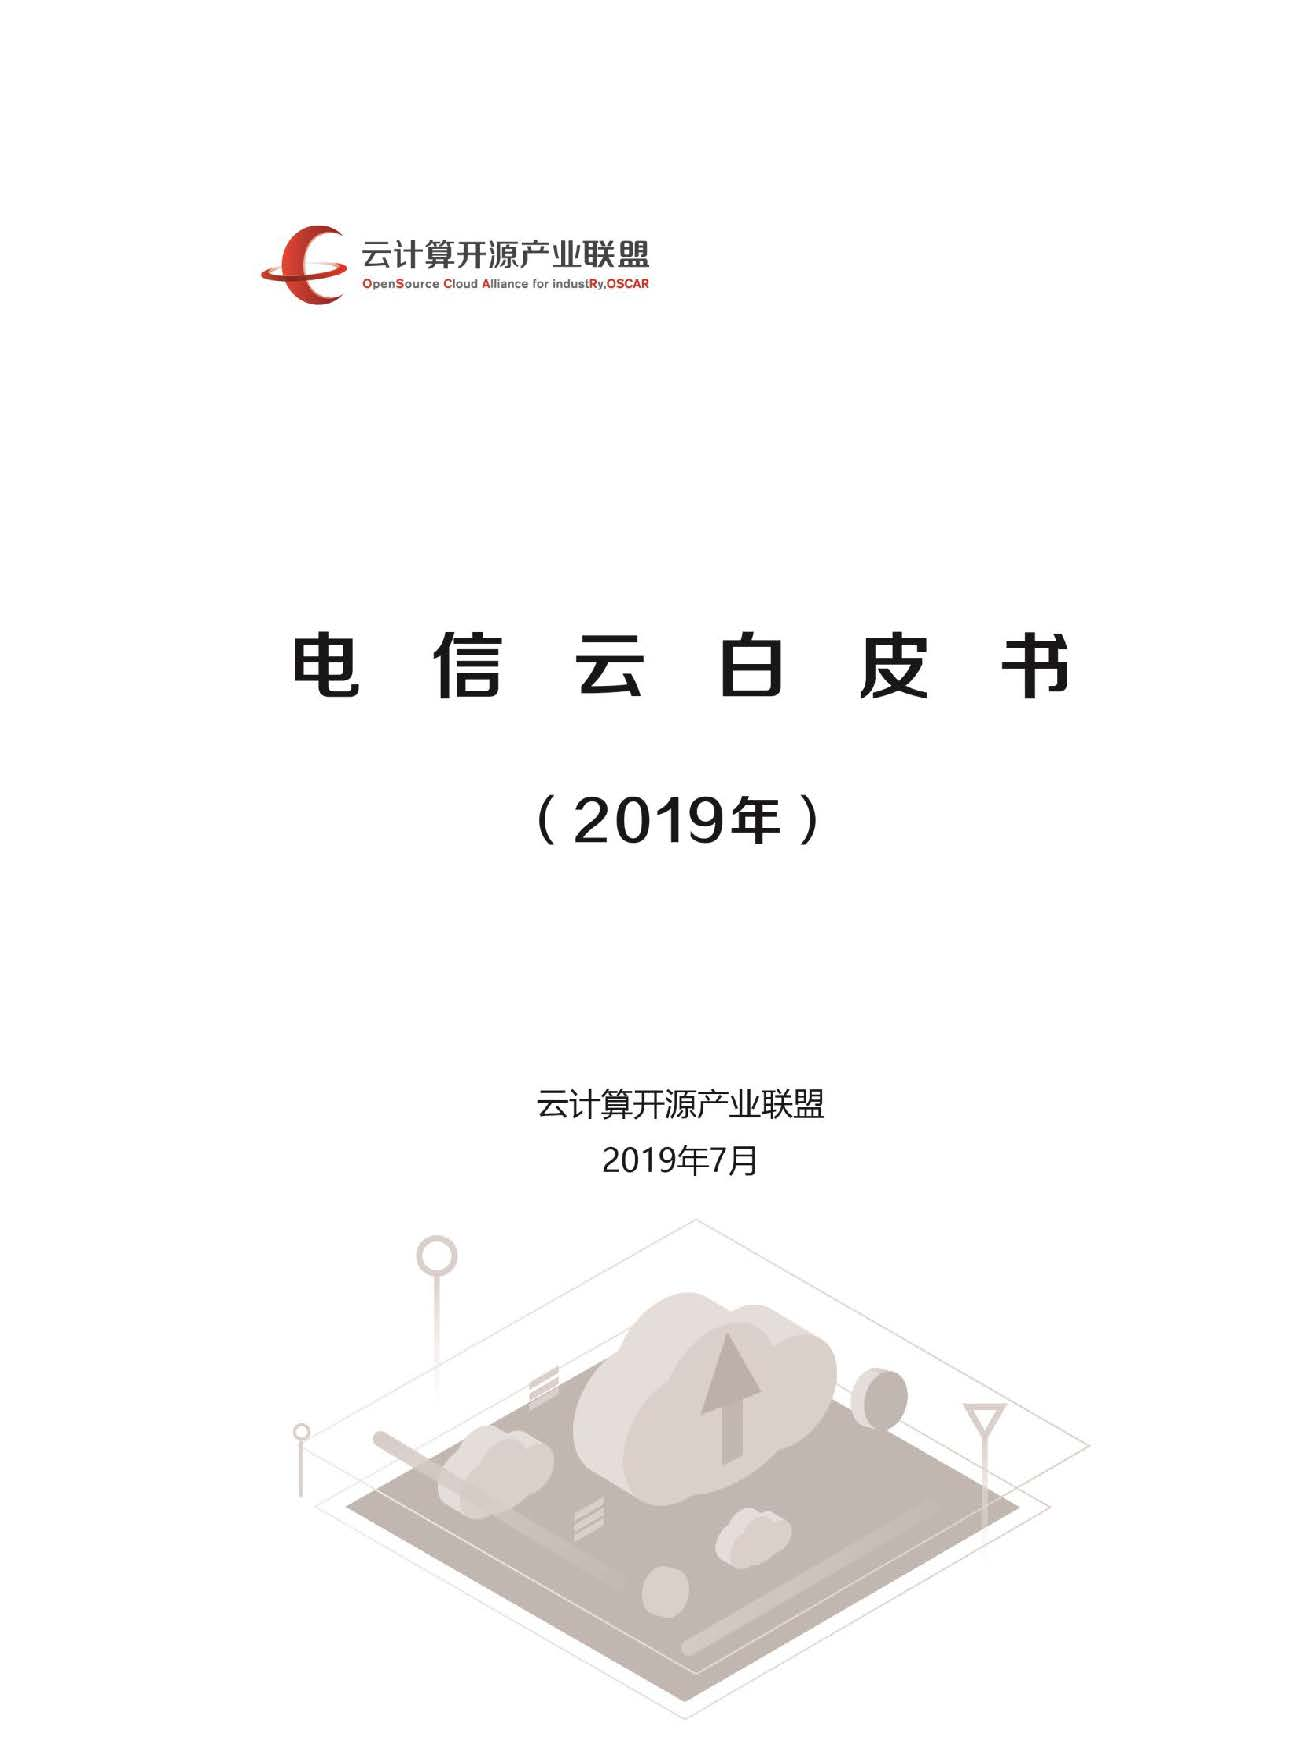 Pages from 电信云白皮书2019.jpg